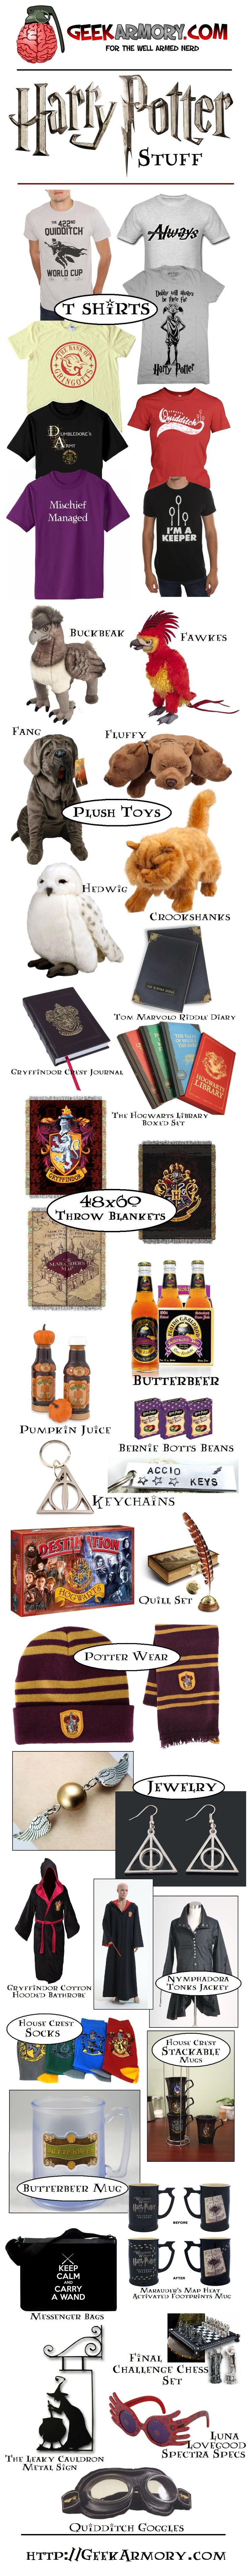 Harry Potter Stuff...@... http://geekarmory.com/?s=harry+potter I want it all...